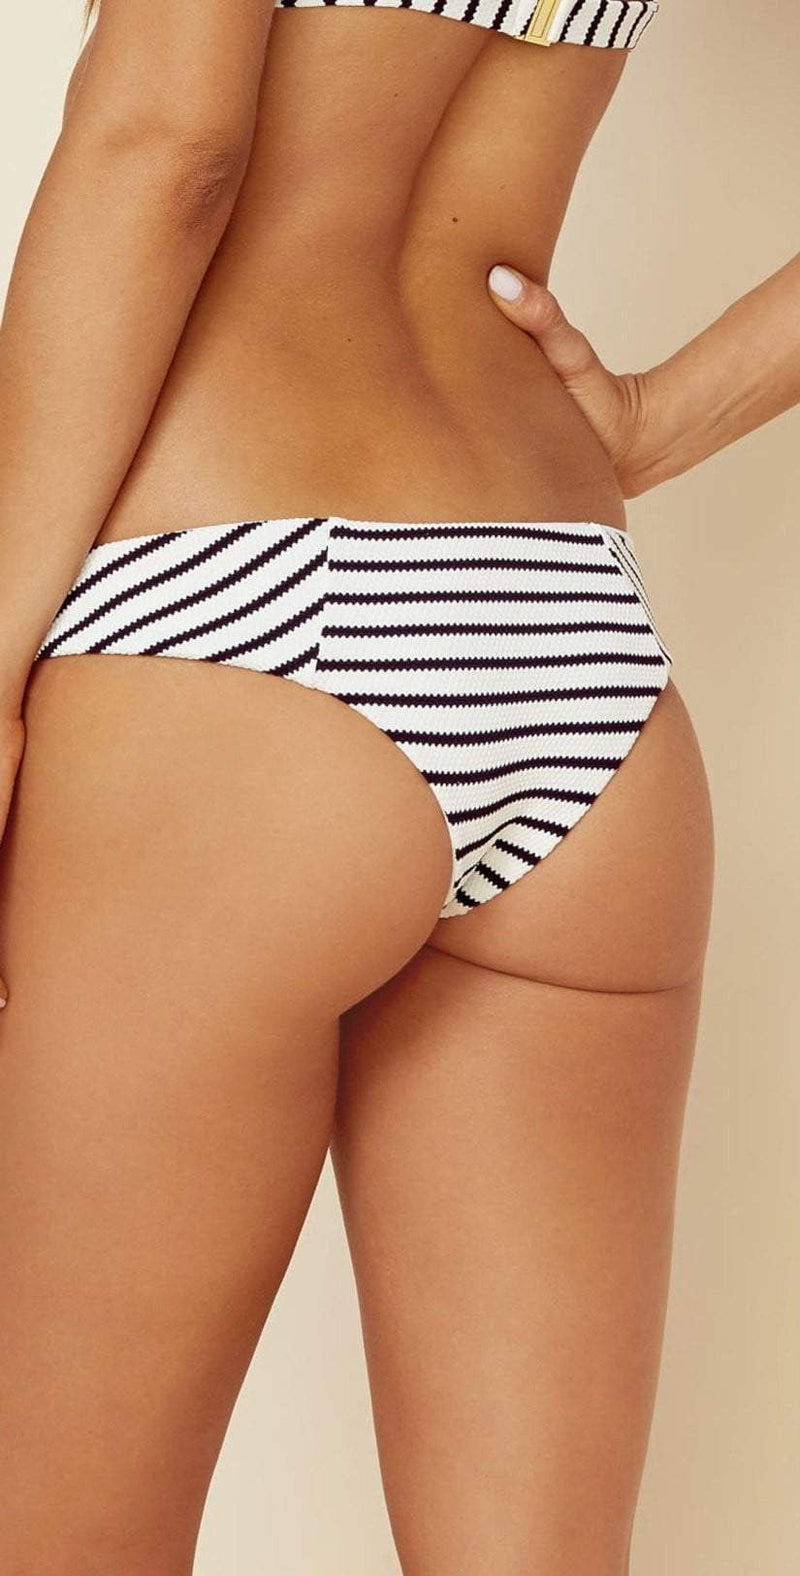 Blue Life Jet Set Skimpy Bottom in Jacquard Stripe 438-2456 STRP: